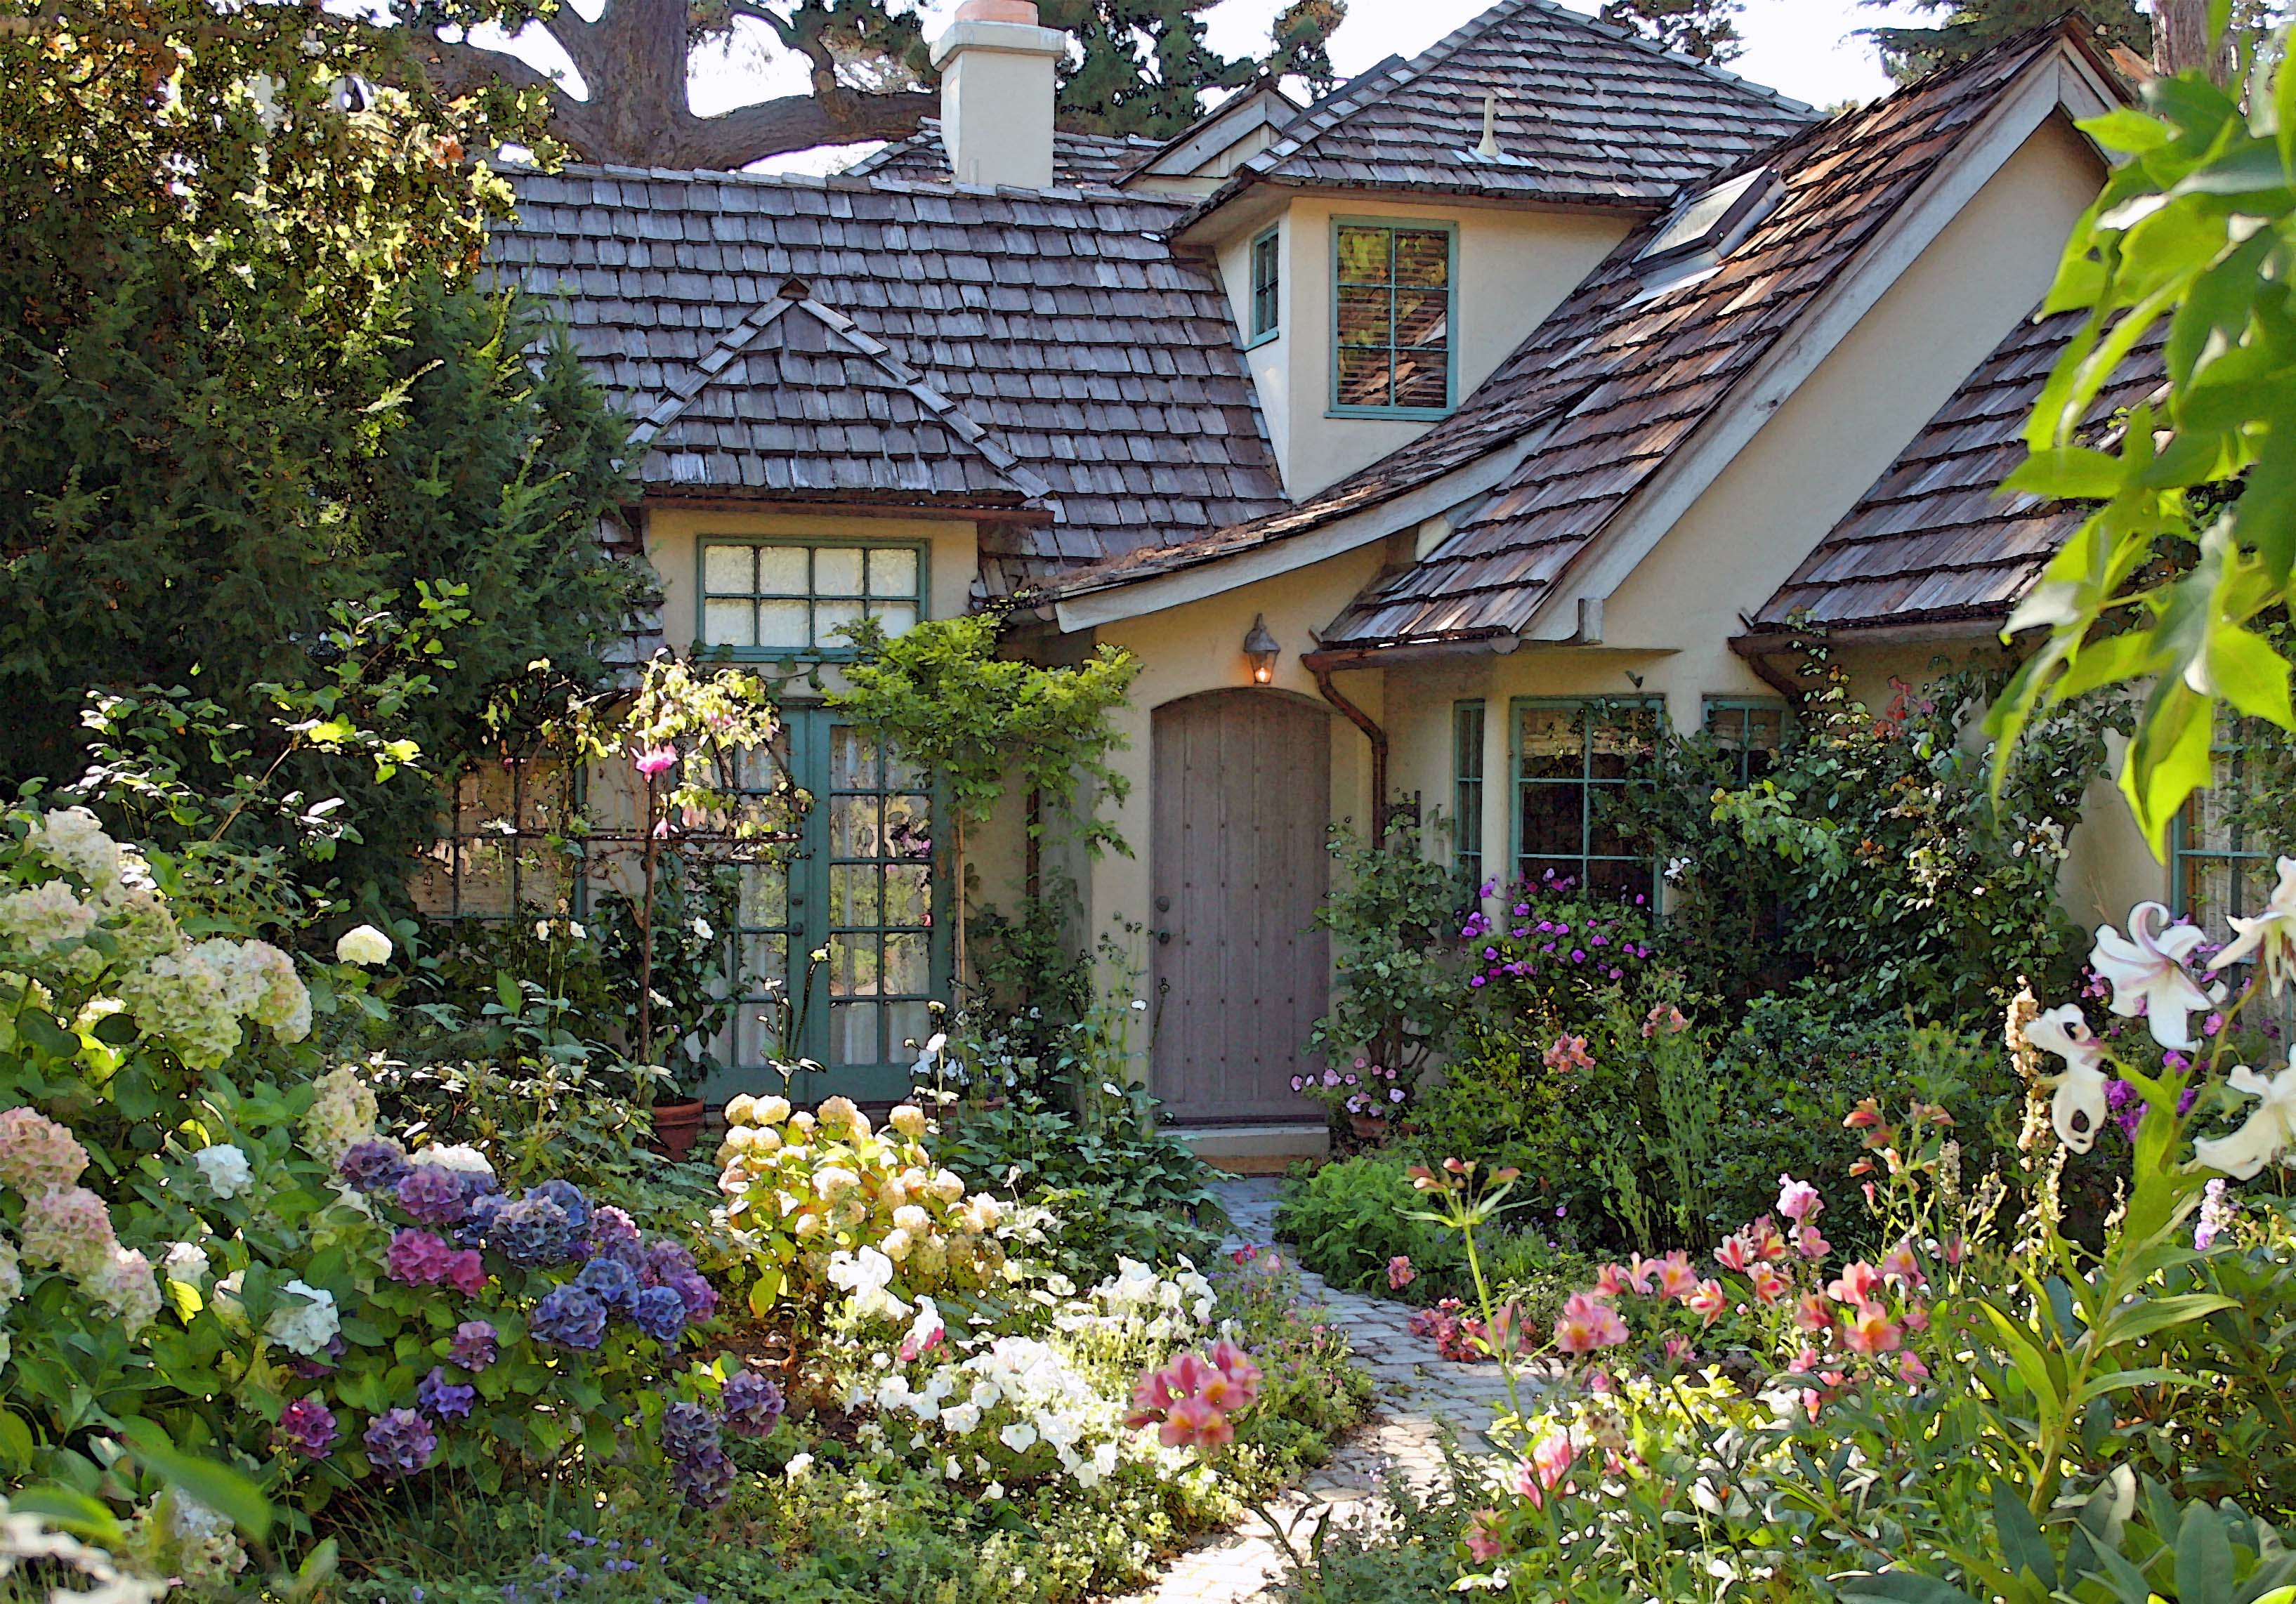 I tour the carmel garden of teri winton once upon a time Cottage houses